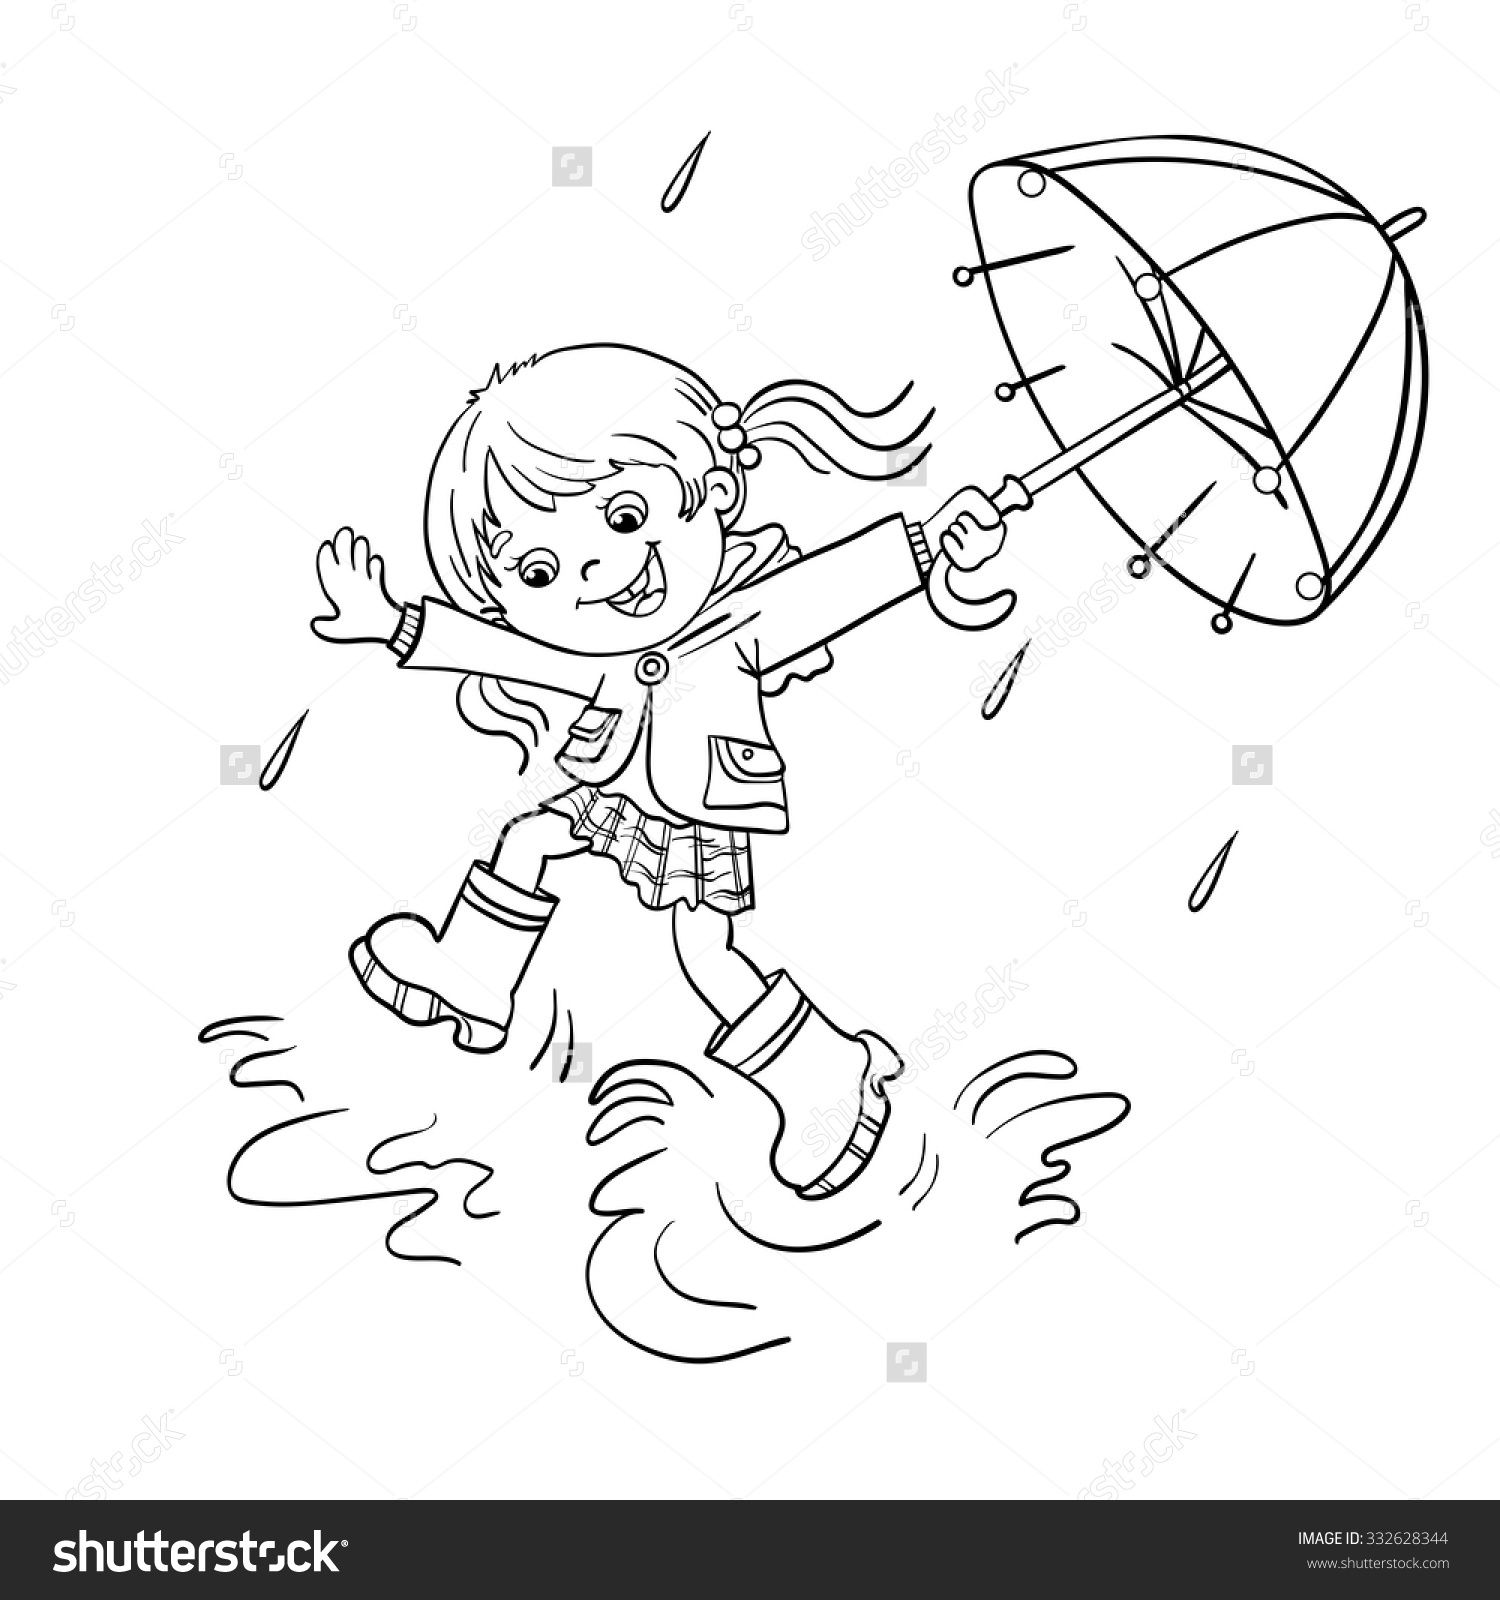 Rain Coloring Pages: Playing In The Rain Coloring Pages